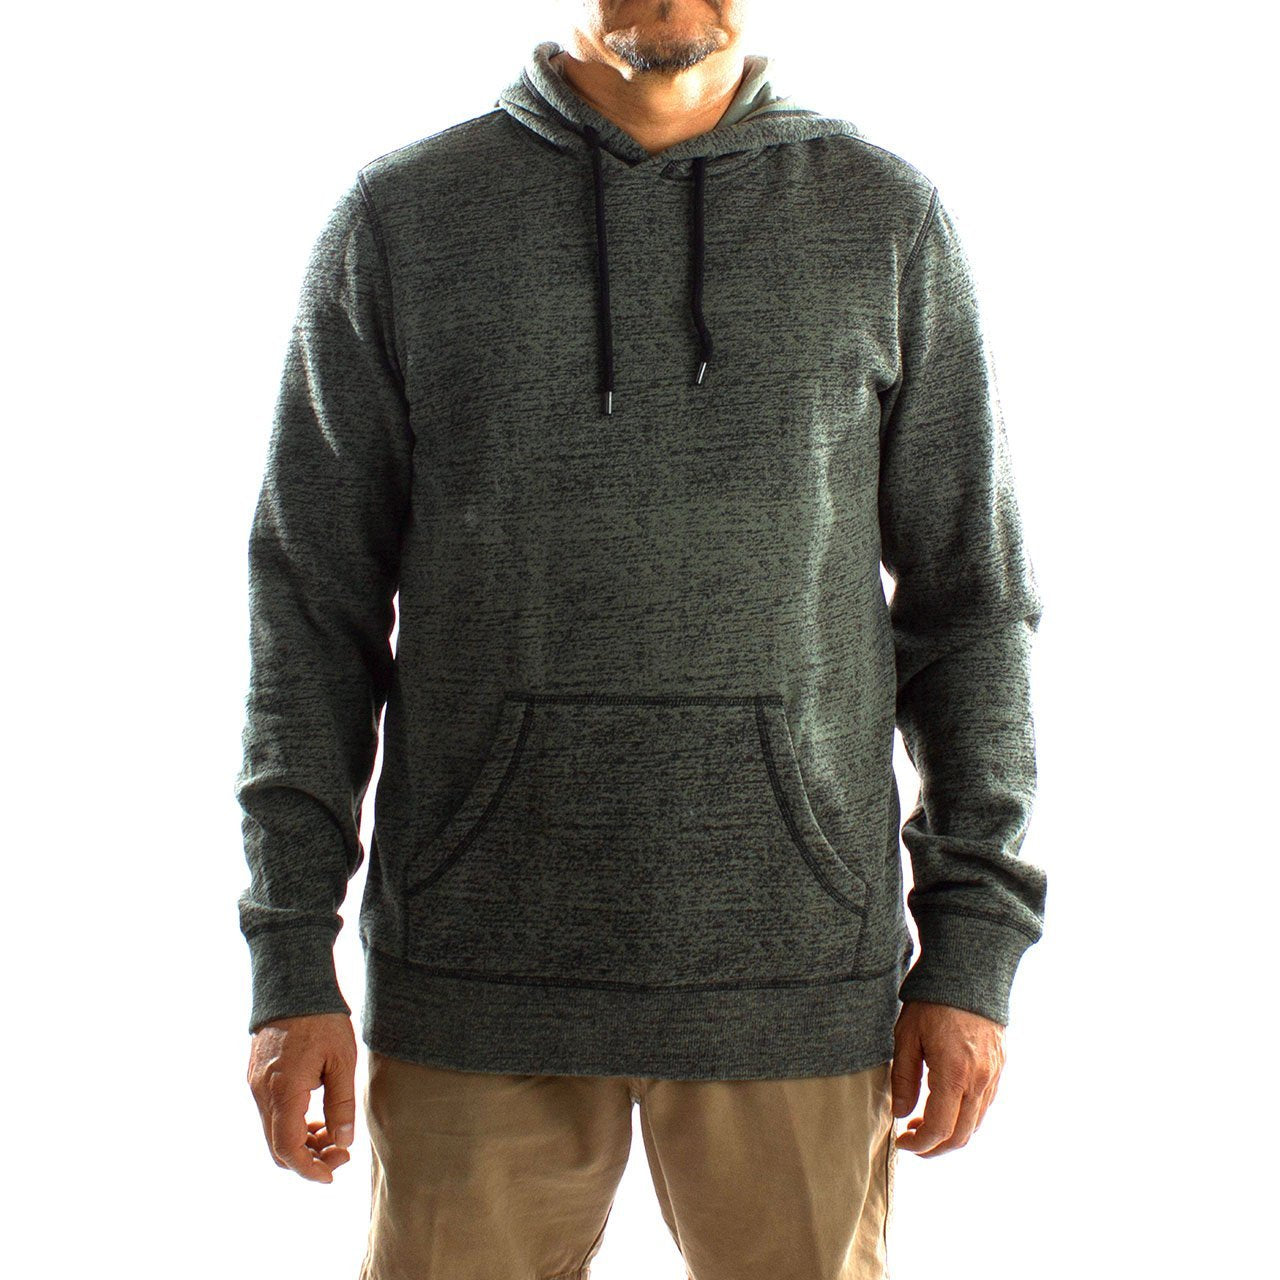 mens grey hoodie pullover clothes jacket designer clothing lord owens